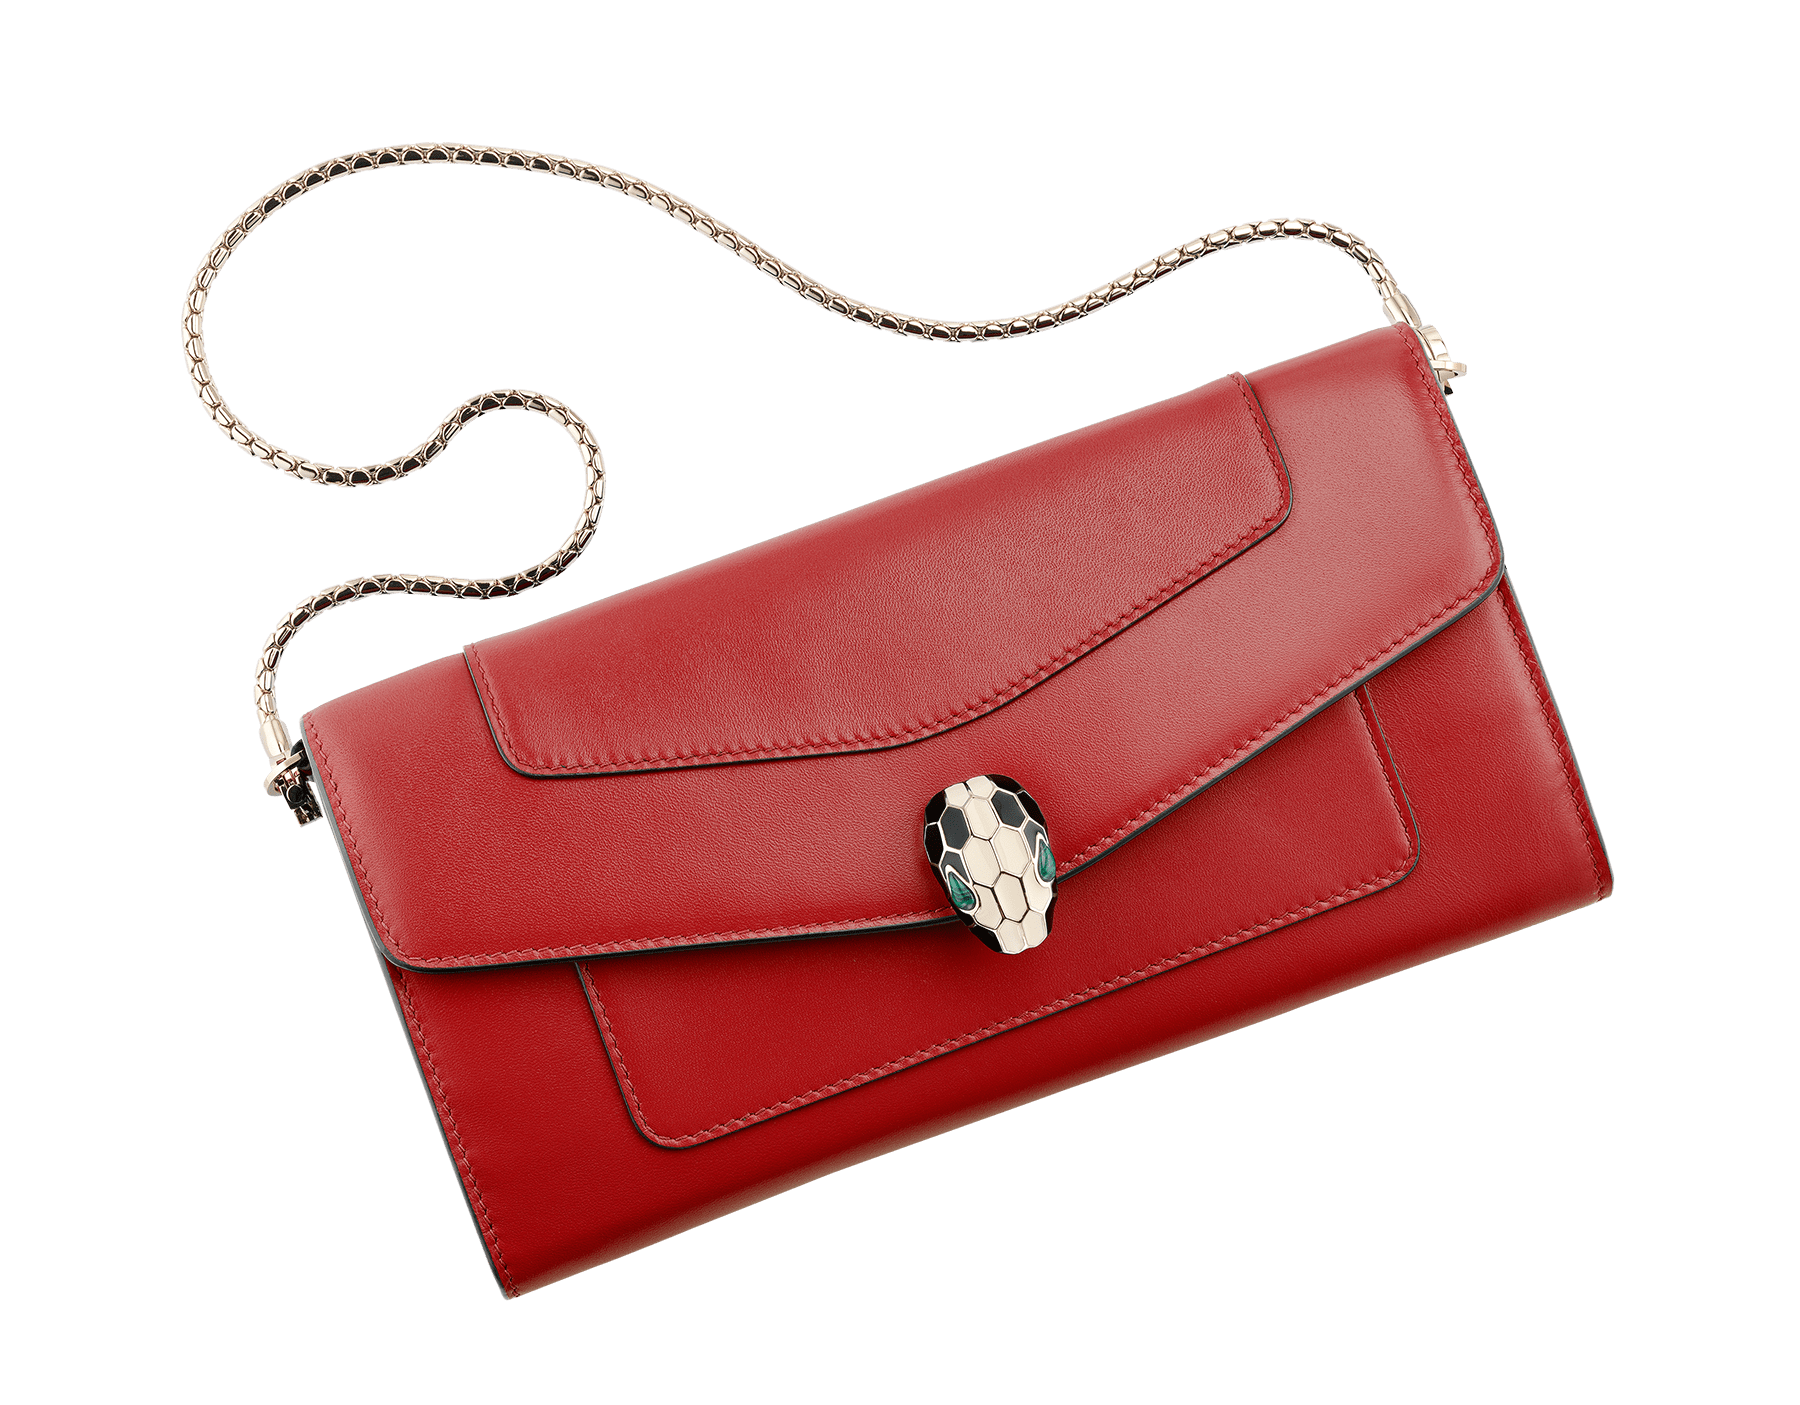 Wallet pouch in ruby red and desert quartz calf leather, with fuxia nappa lining. Brass light gold plated Serpenti head stud closure in black and white enamel with malachite eyes. 281315 image 1